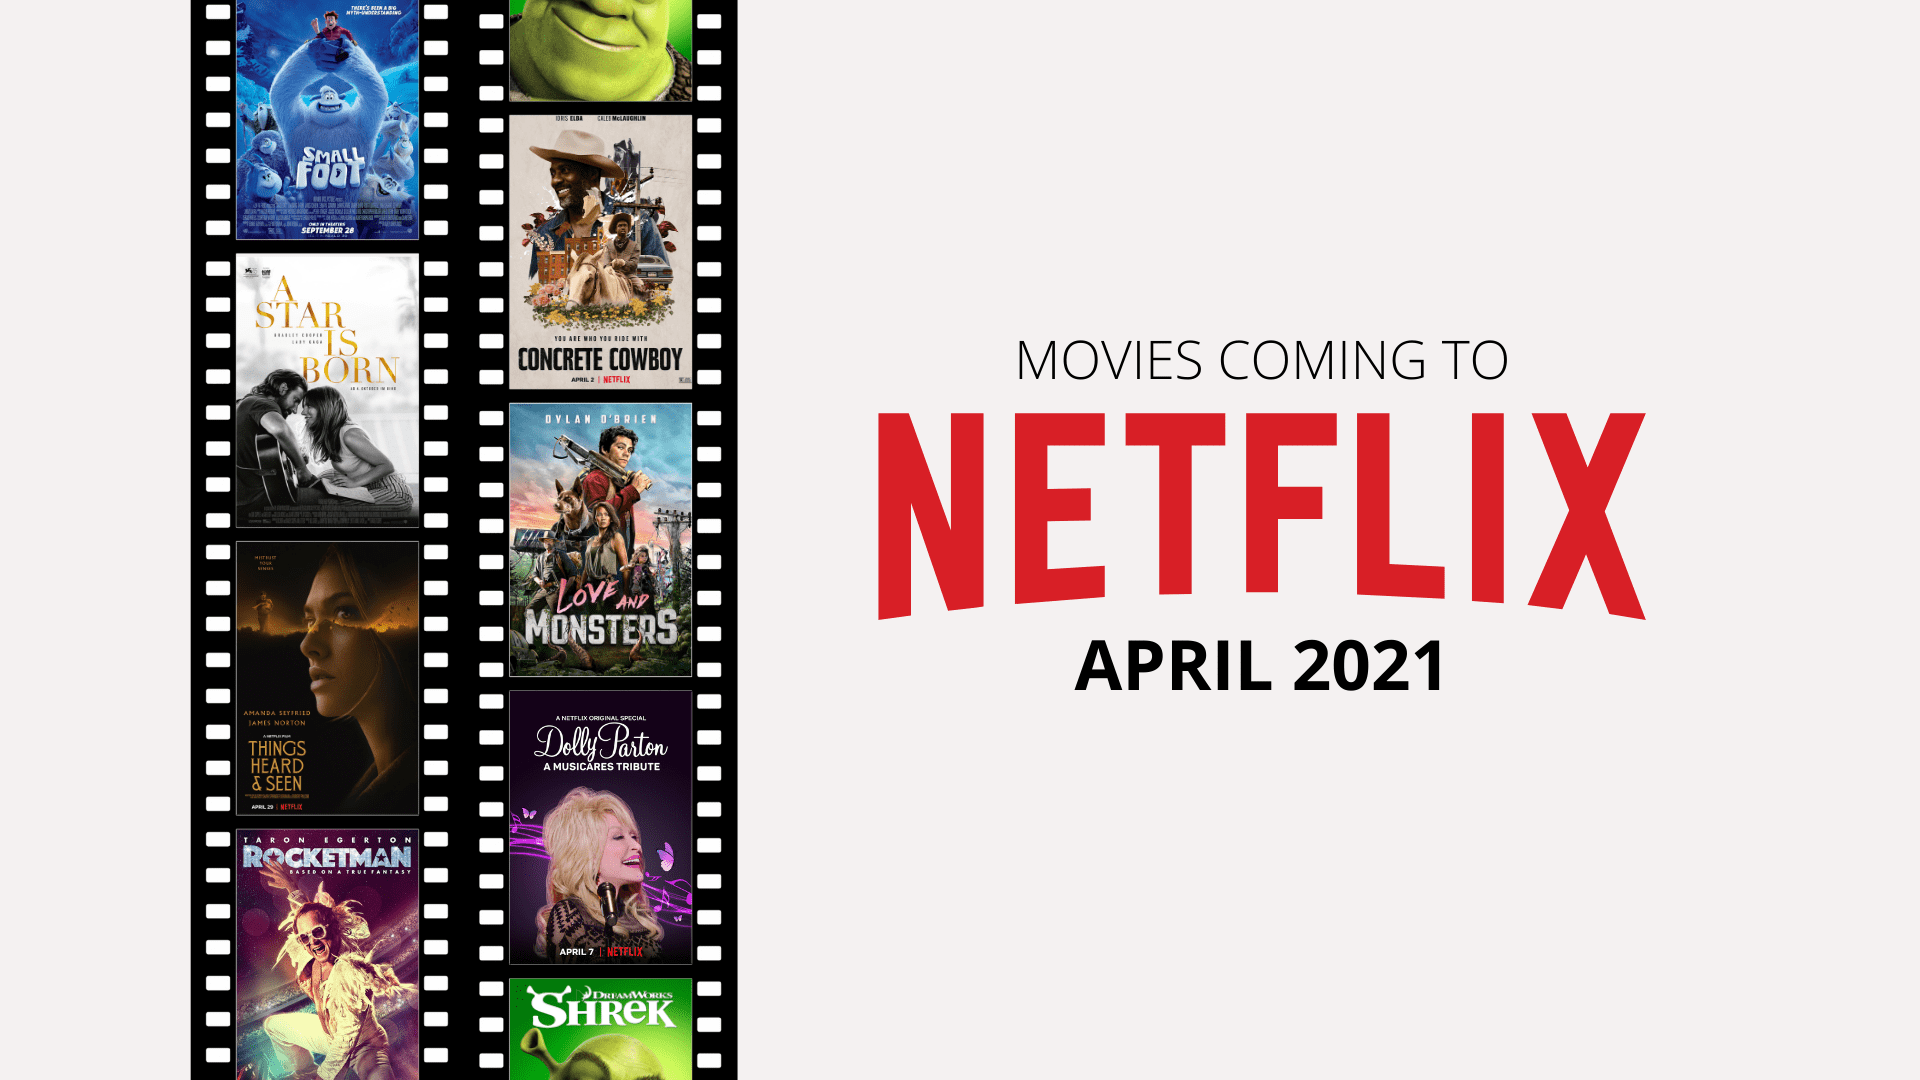 New films on Netflix April 2021 in UK and US